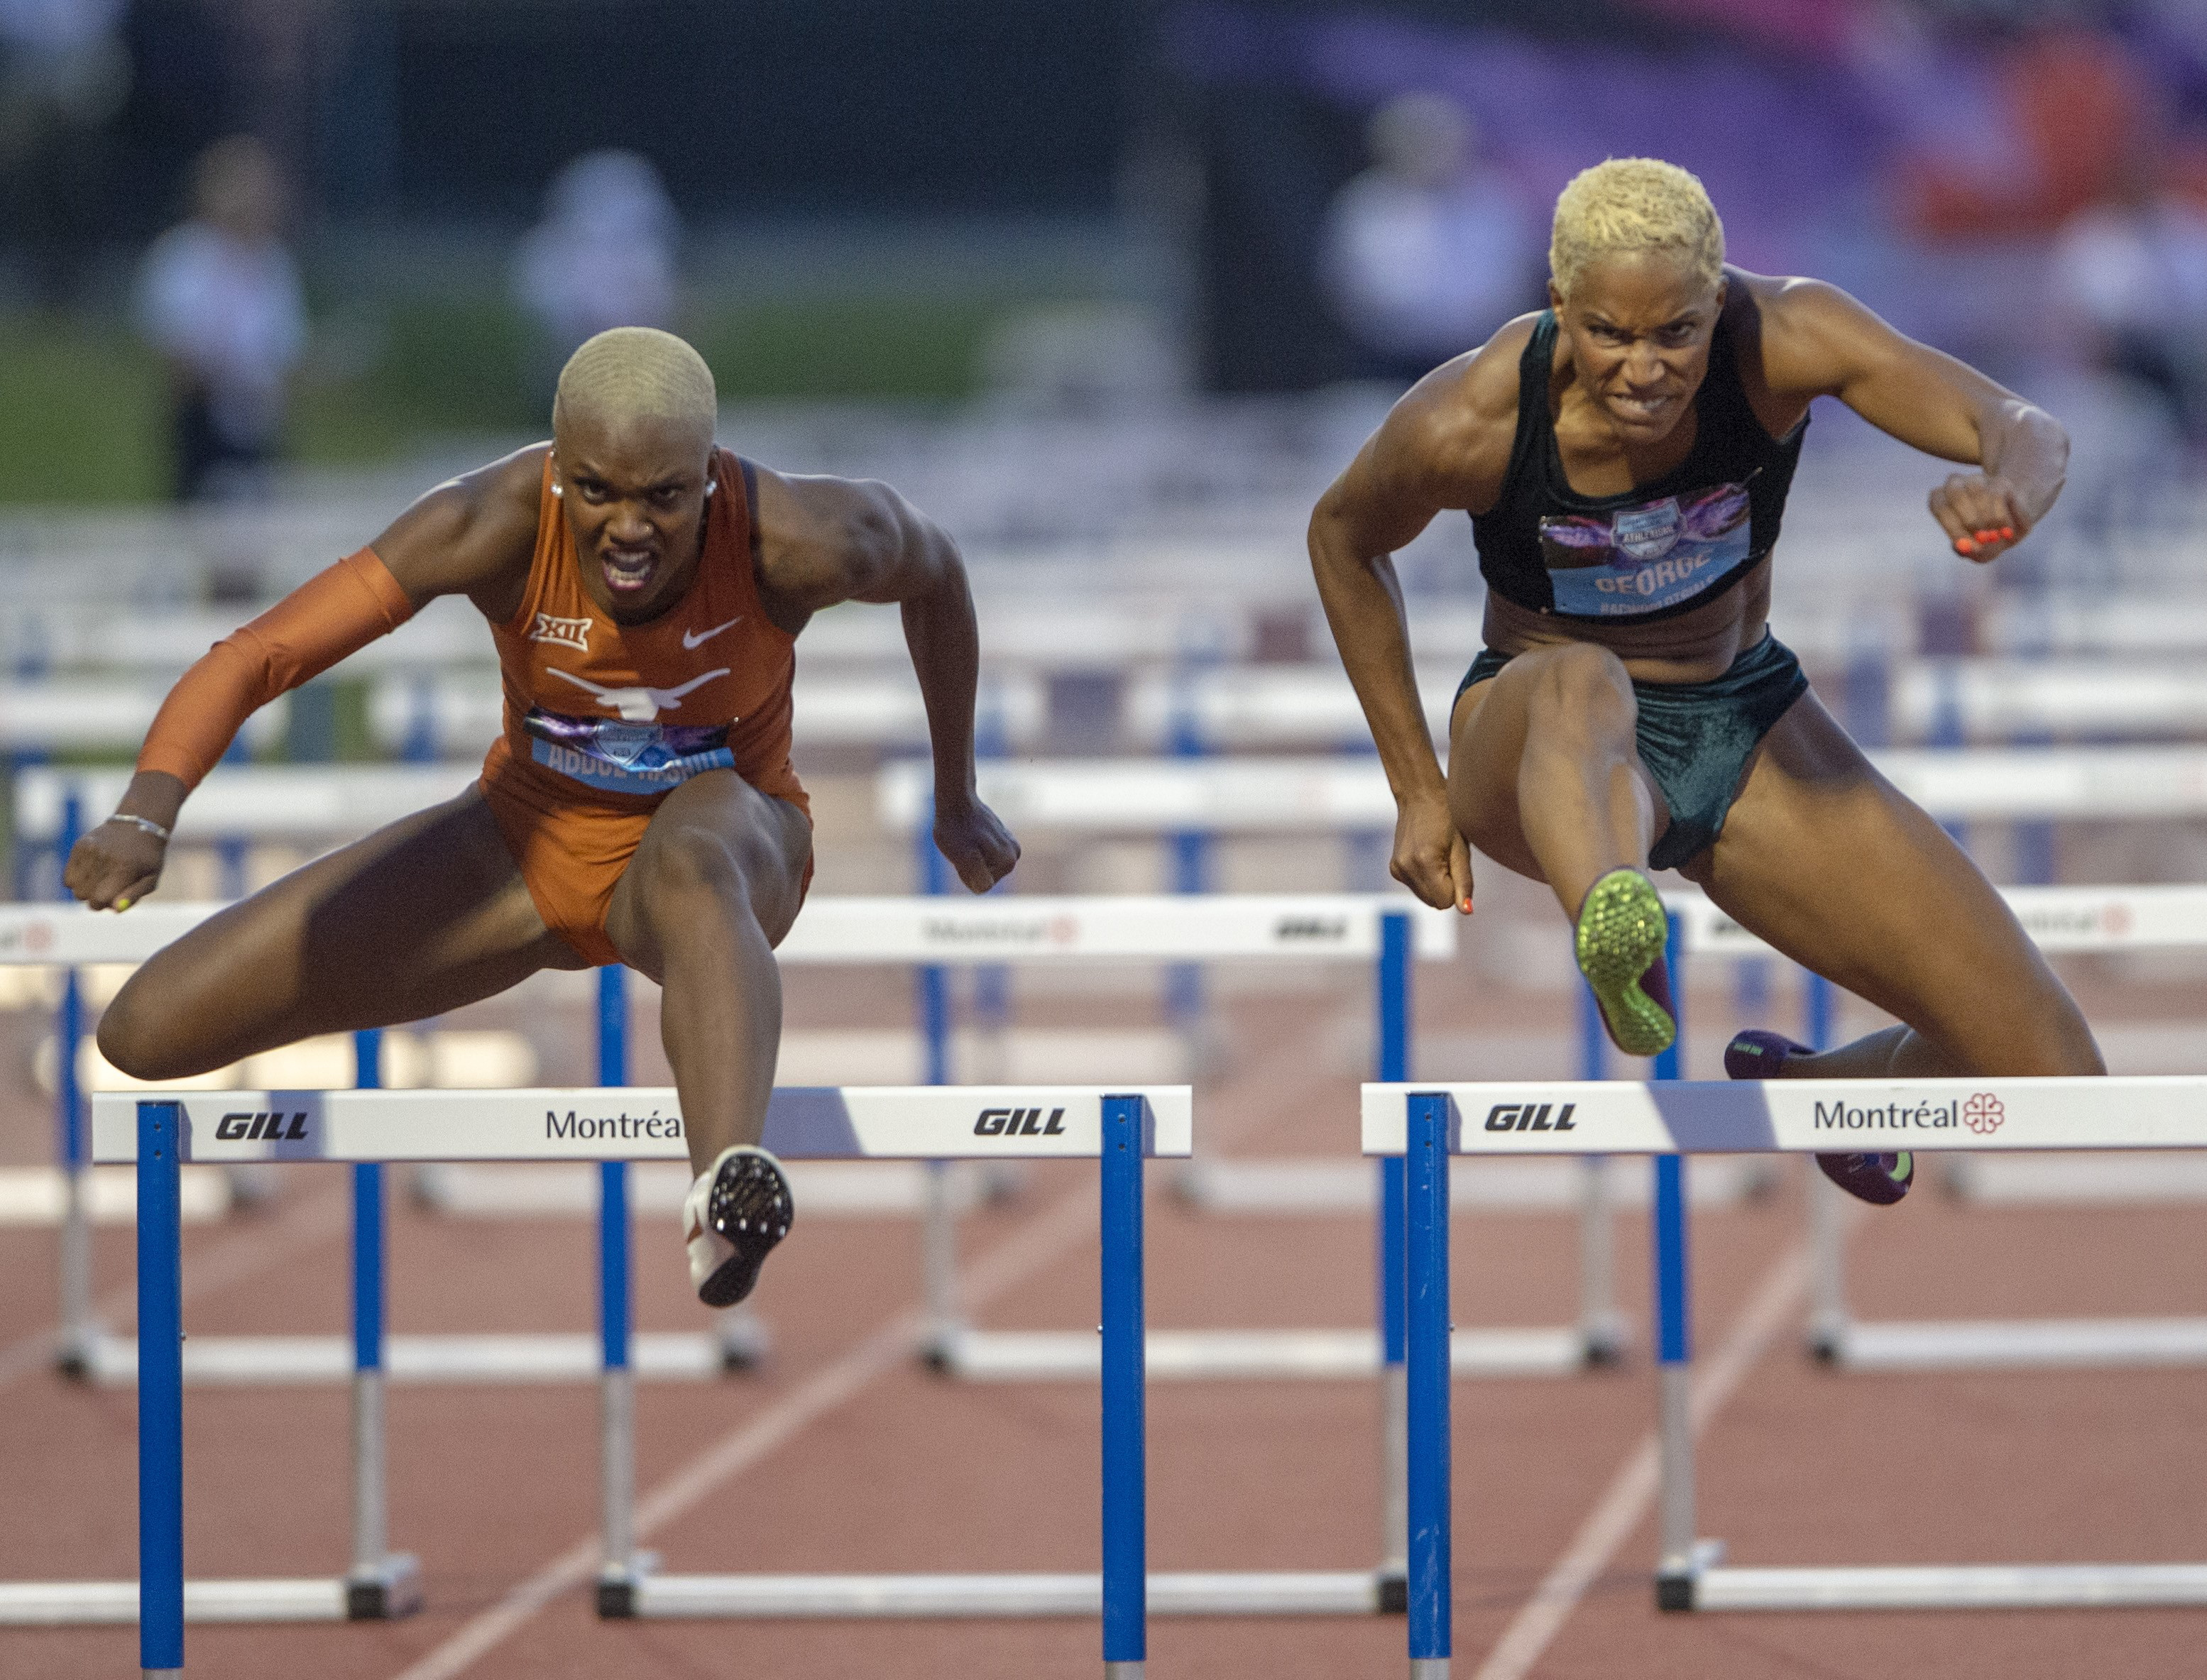 Mariam Abdul Rashid and Phylicia George race over hurdles